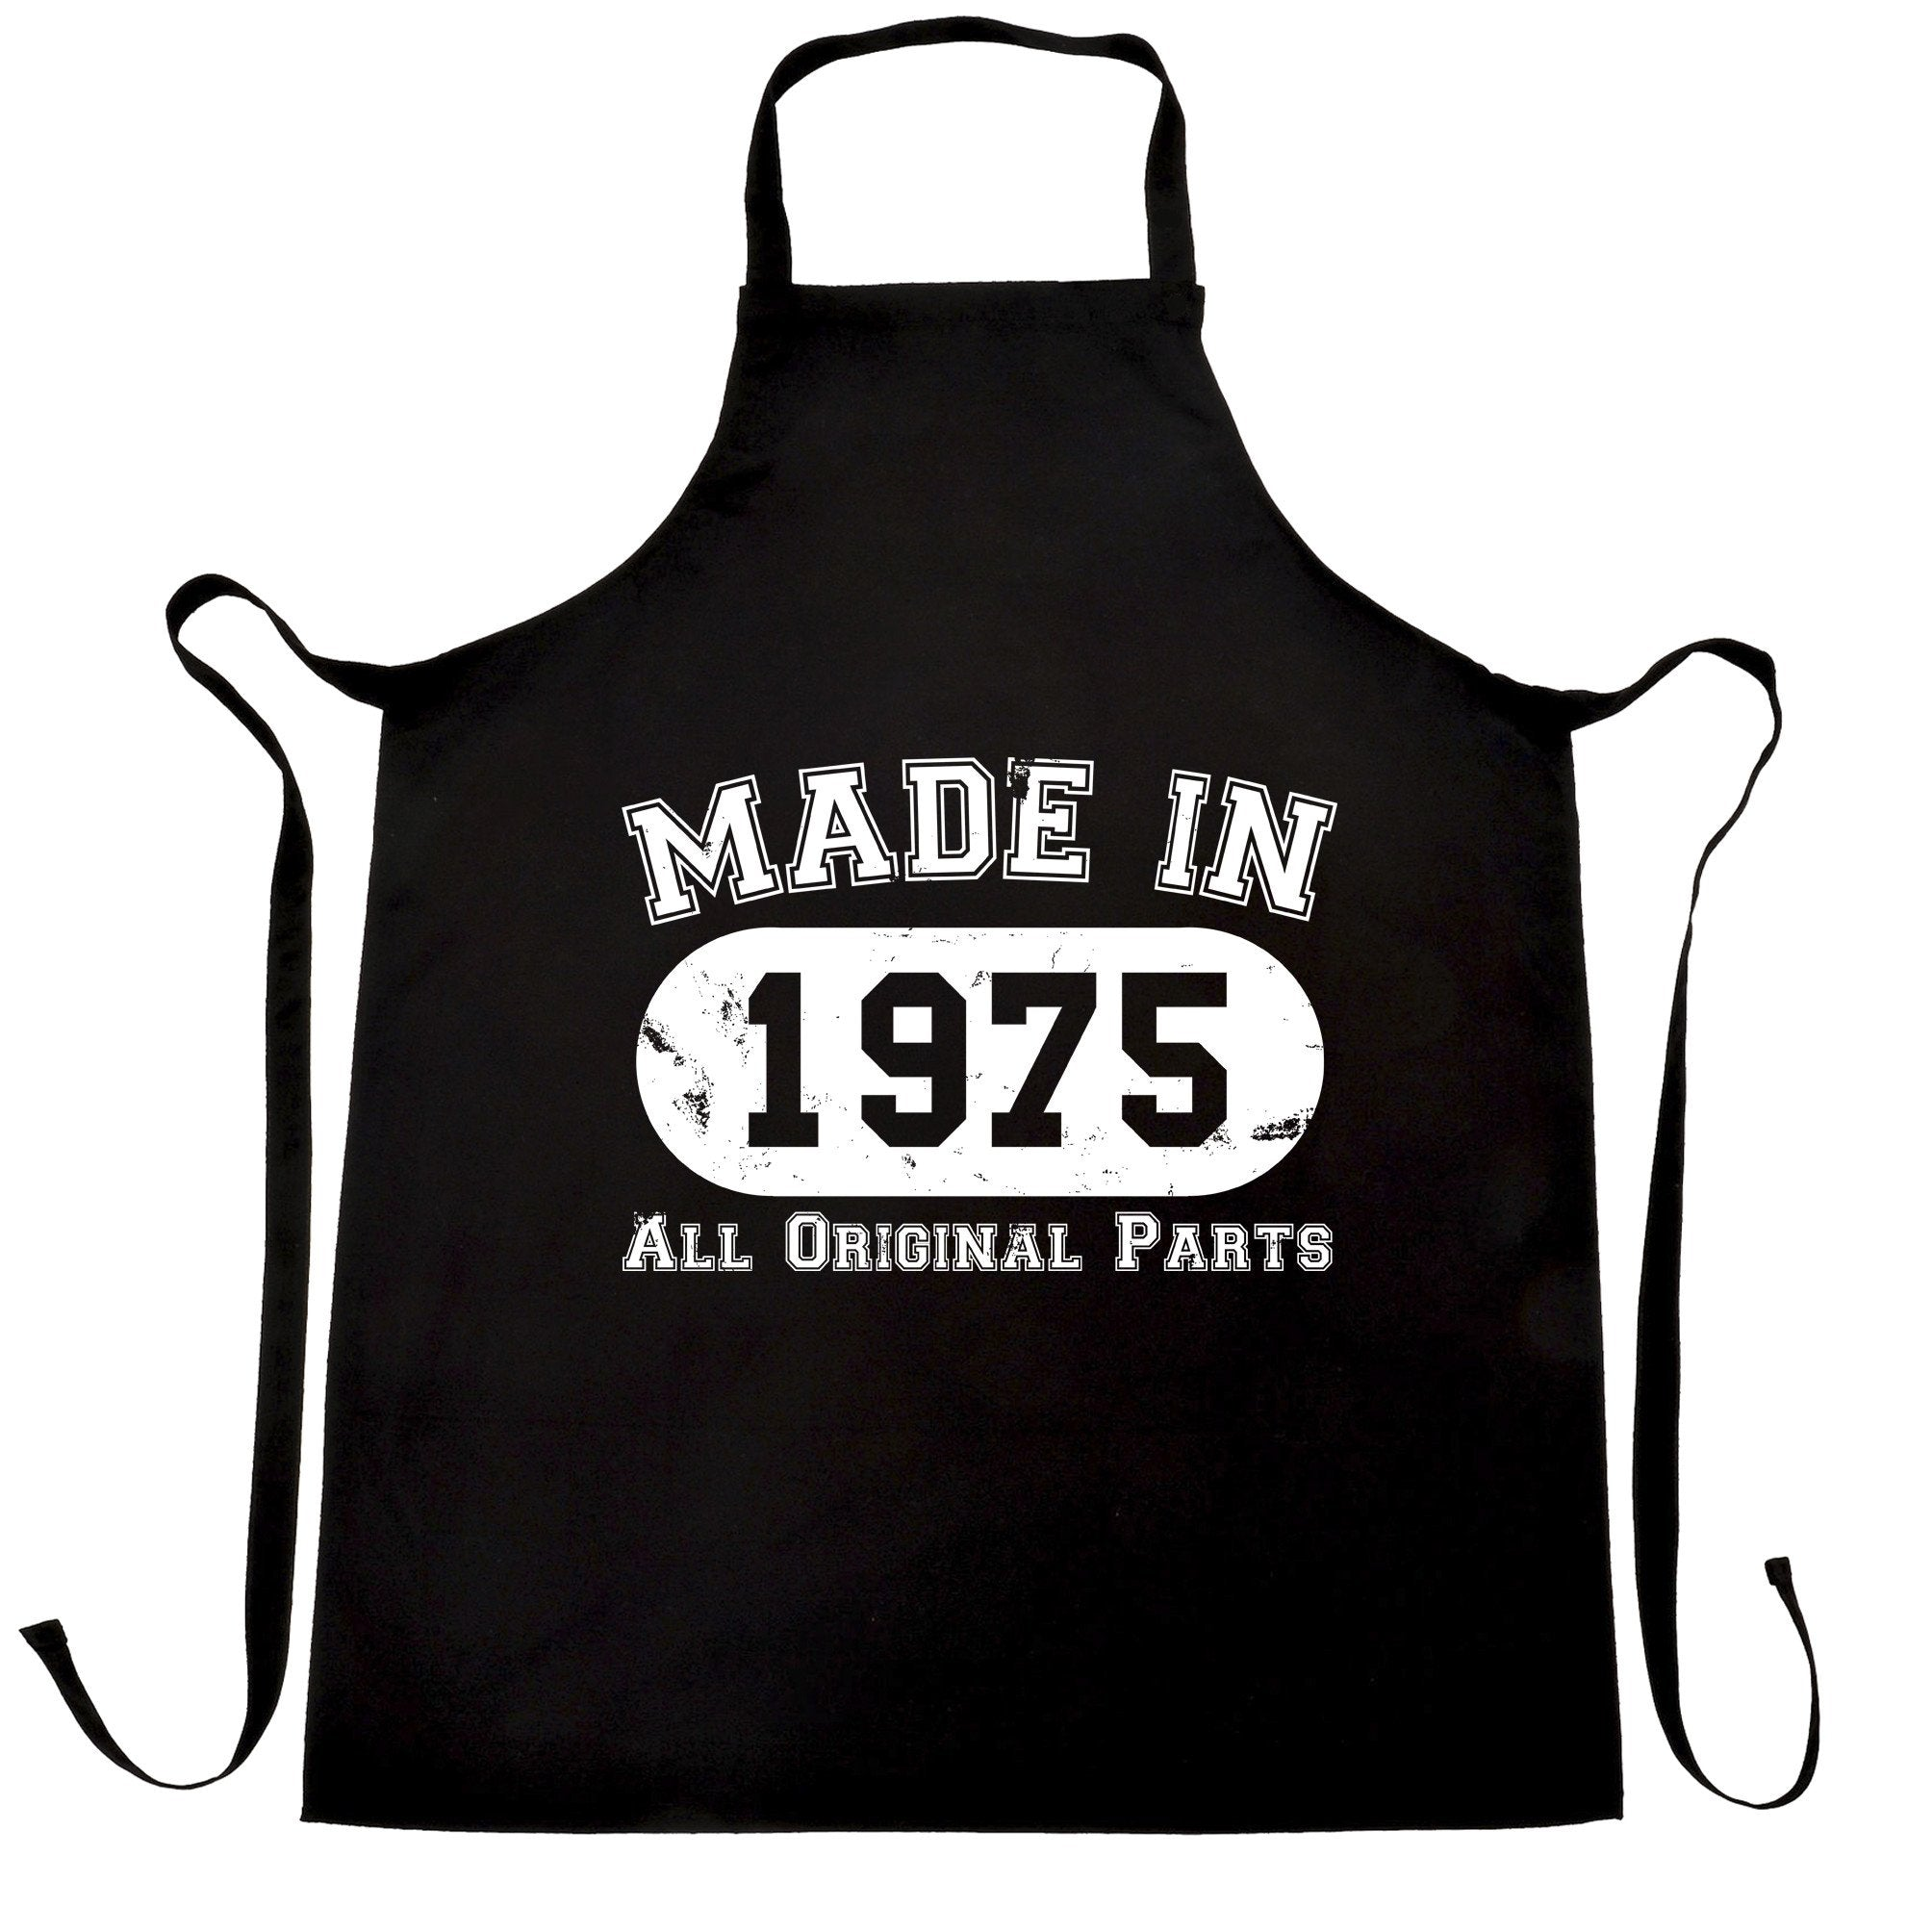 Made in 1975 All Original Parts Apron [Distressed]